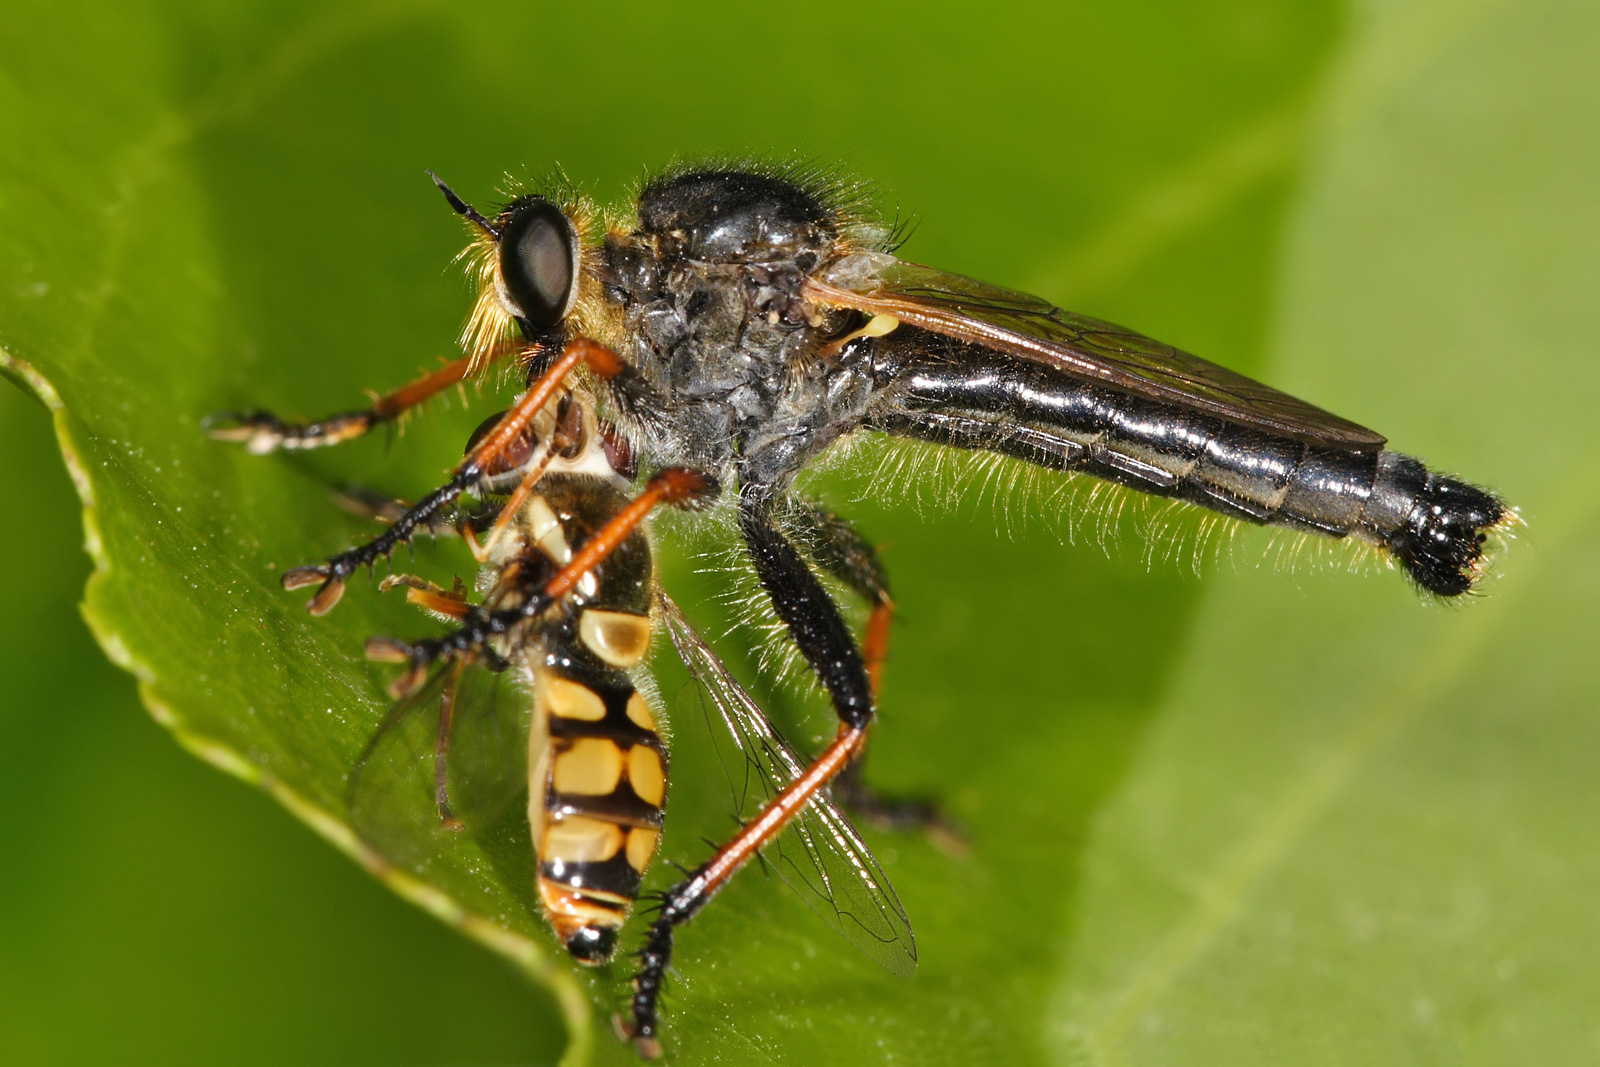 File:Common brown robberfly with prey.jpg - Wikipedia